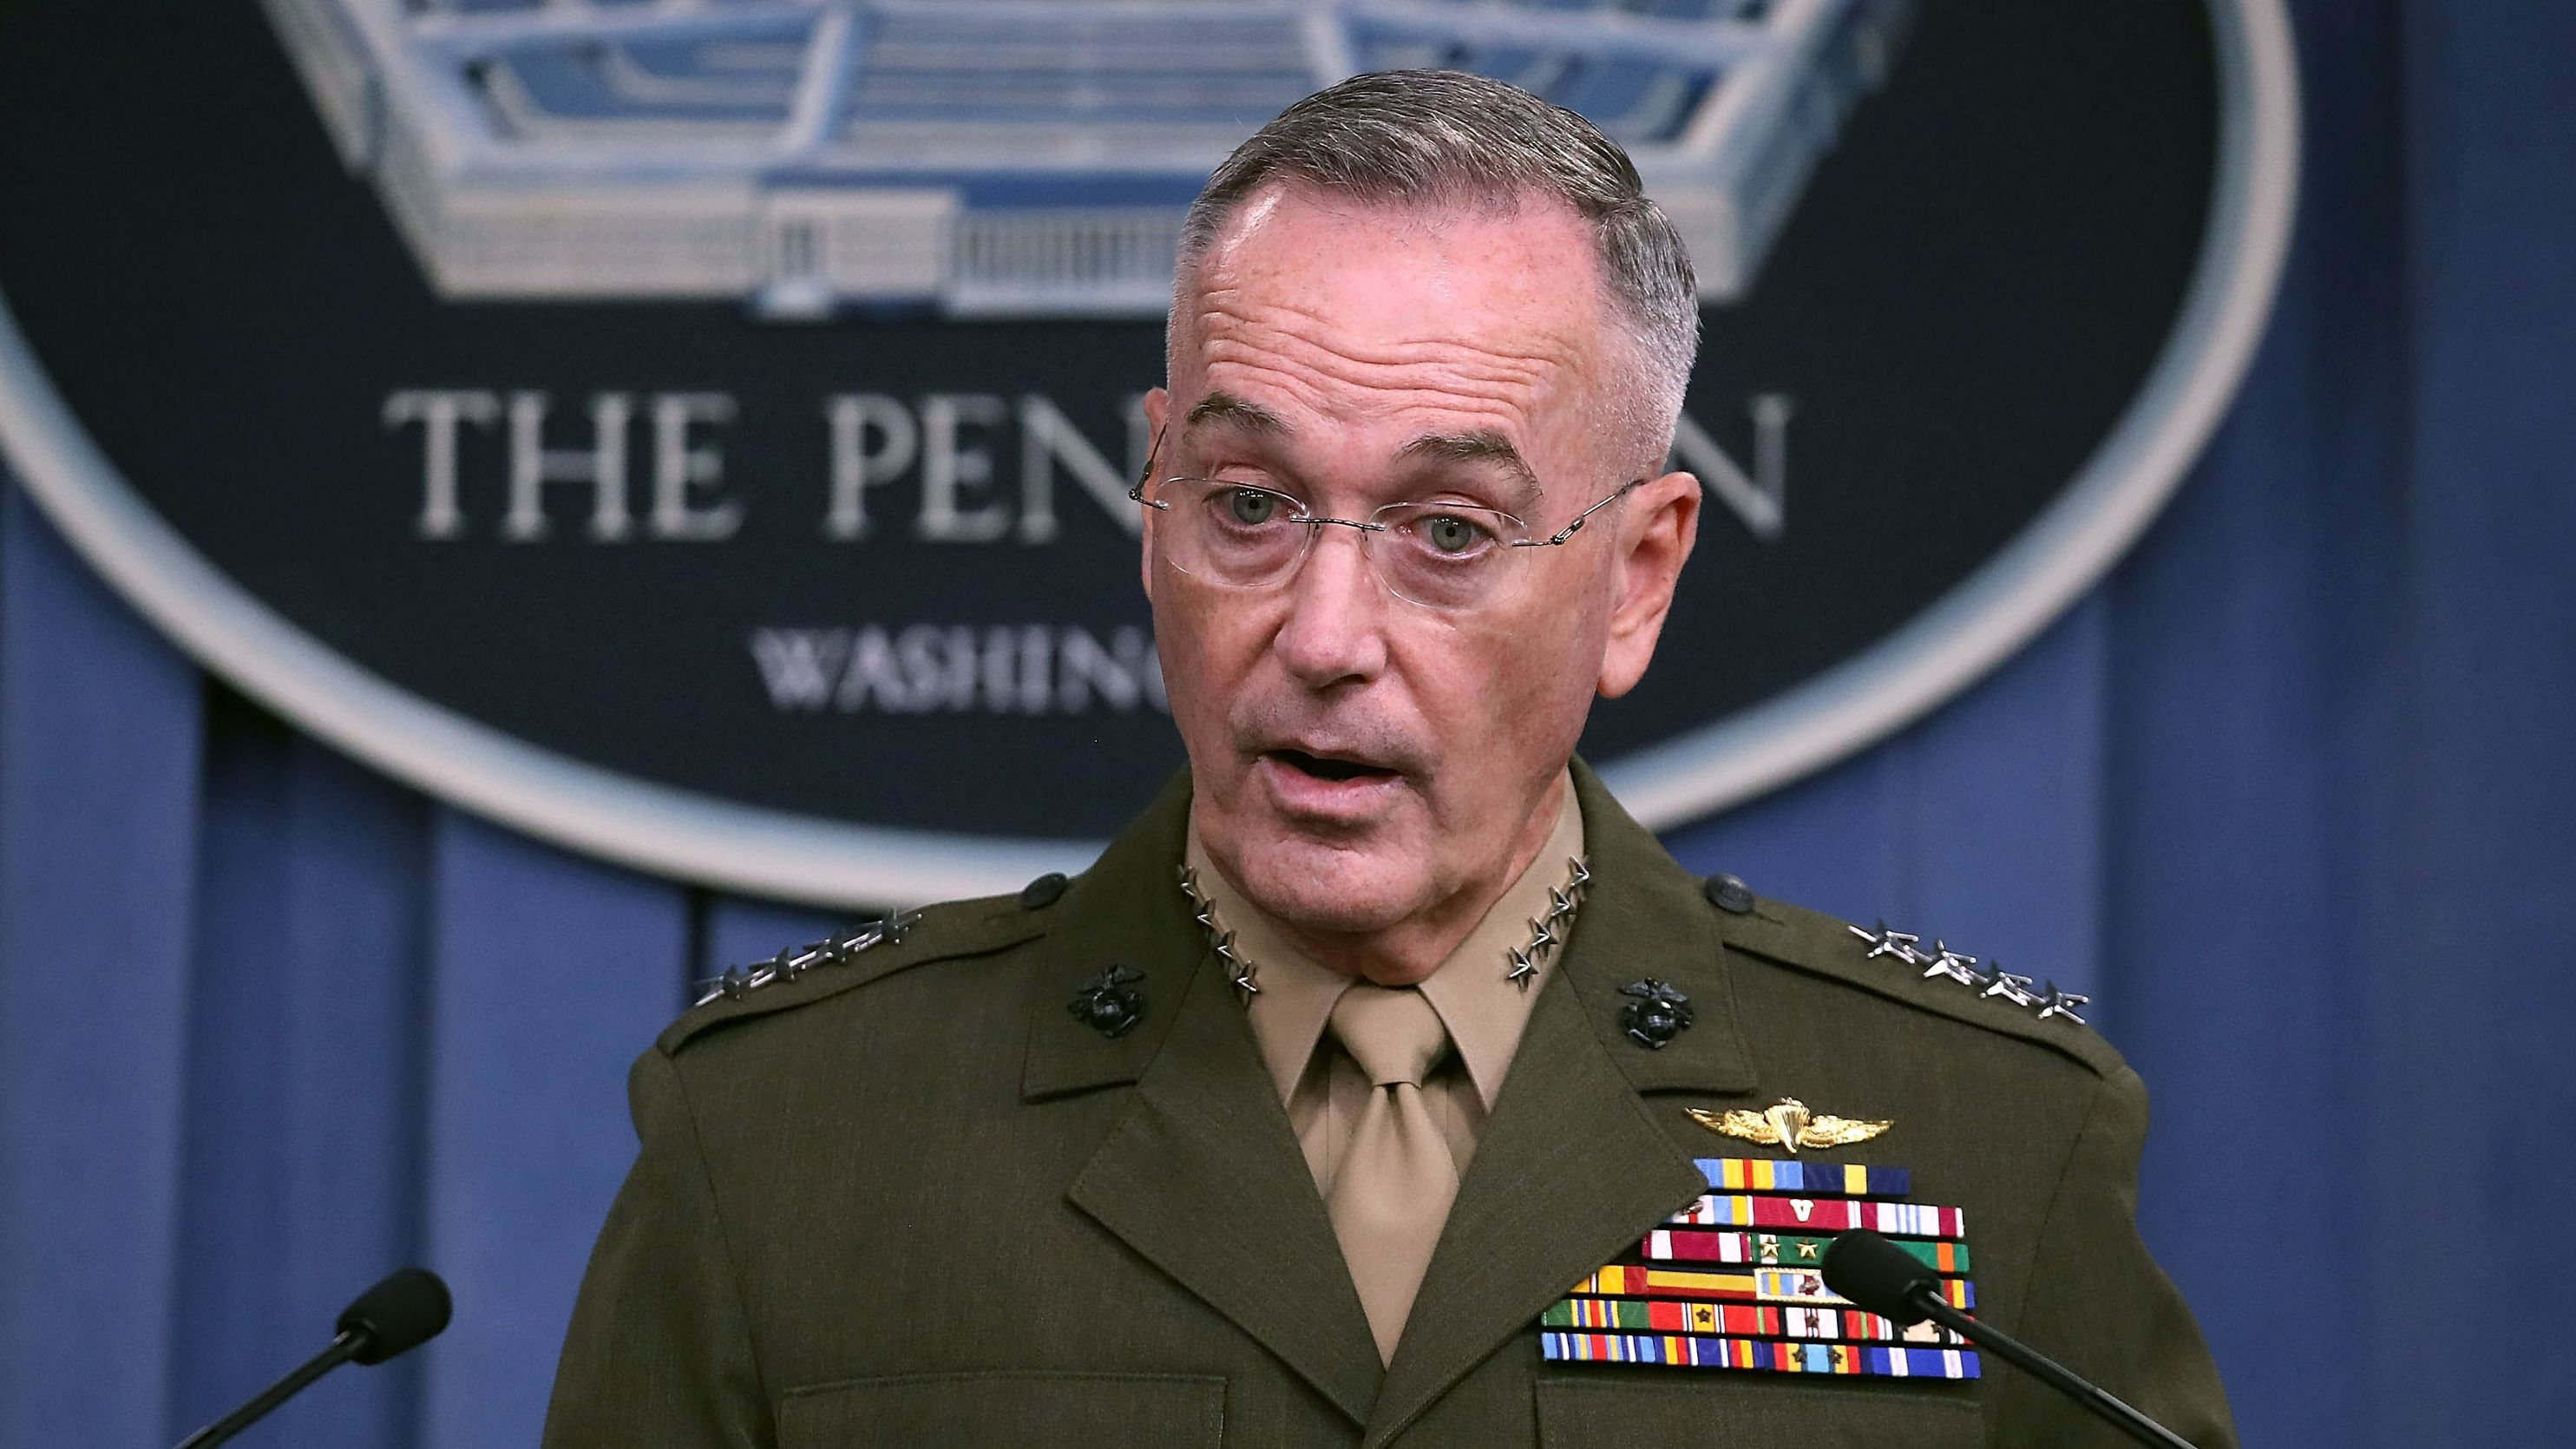 Joseph F. Dunford, Chairman Of The Joint Chiefs Of Staff. (Mark Wilson/Getty Images)